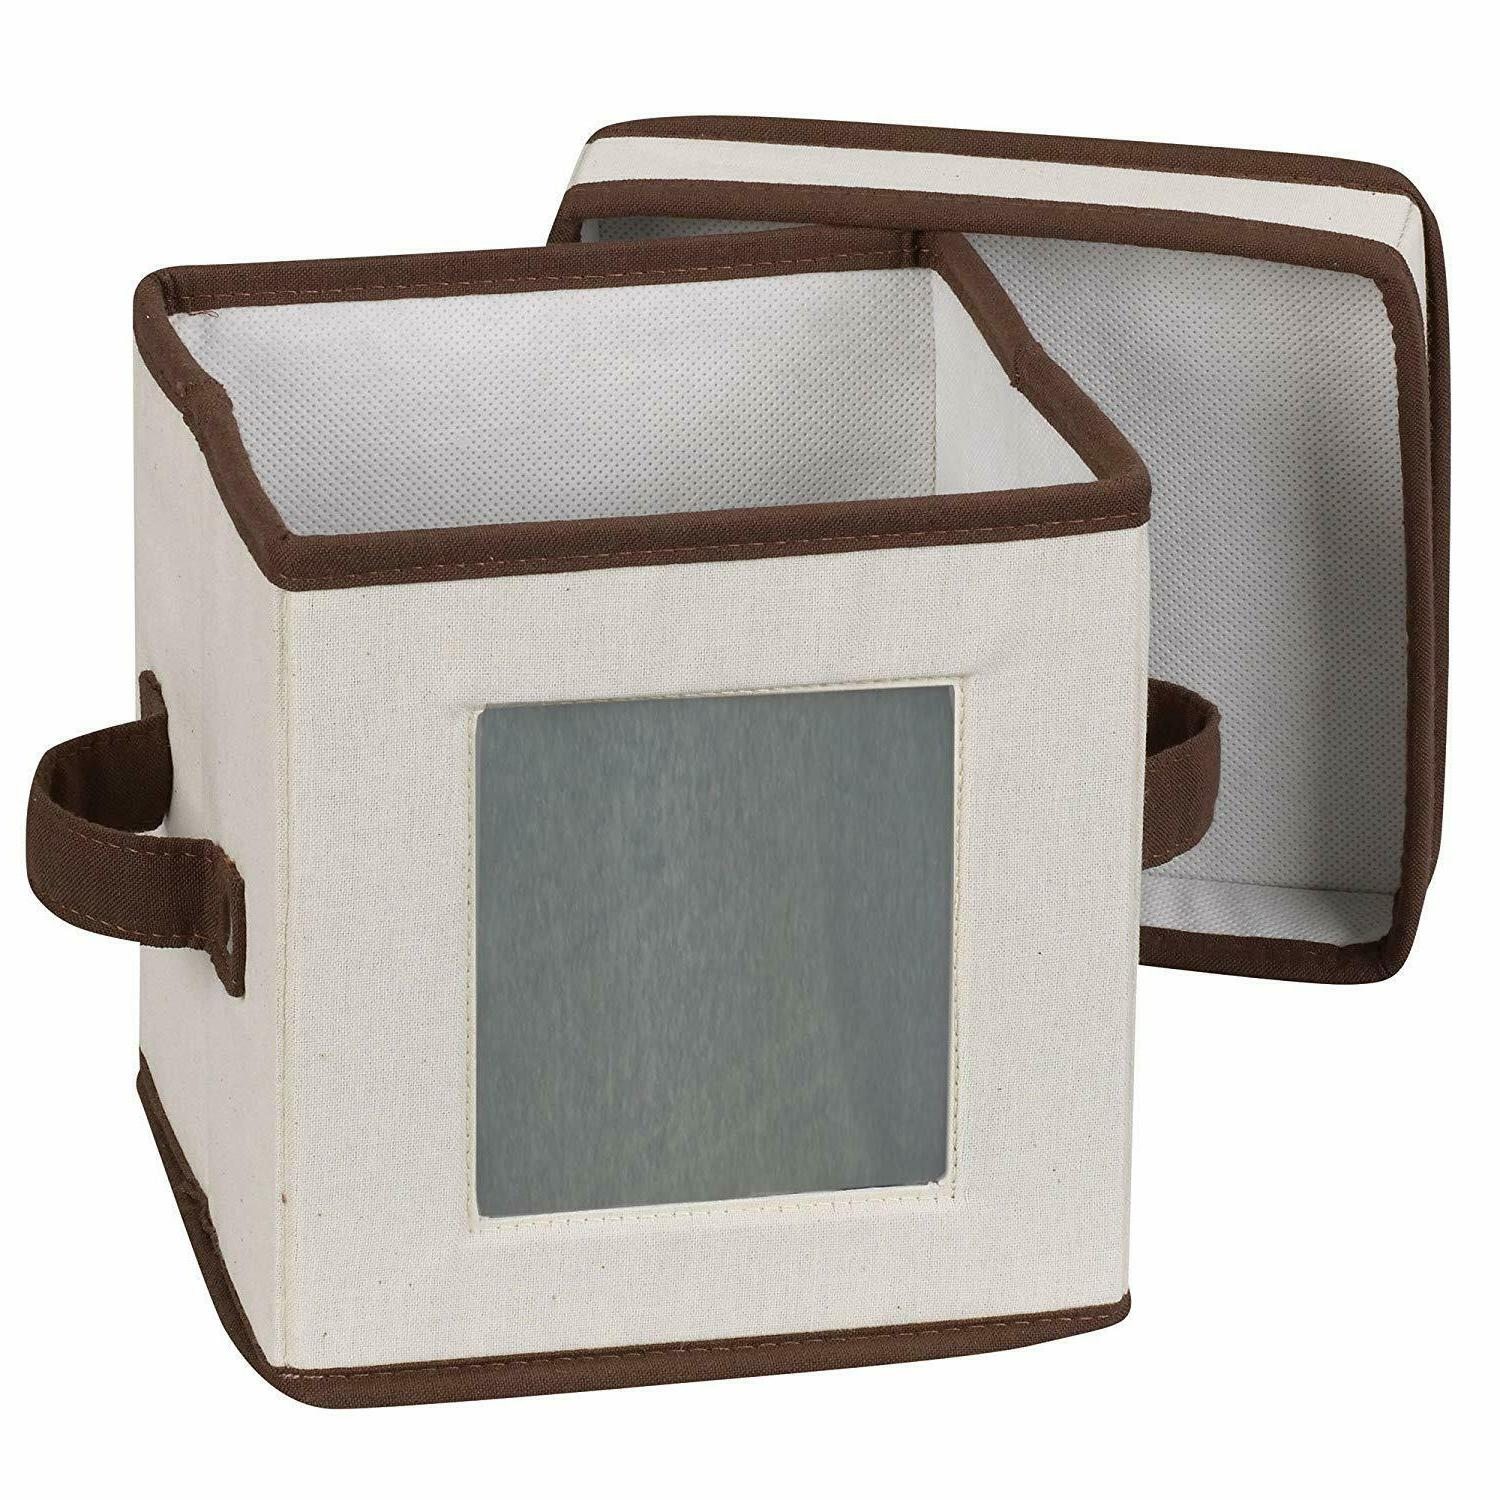 Household Dinnerware Box with Lid and